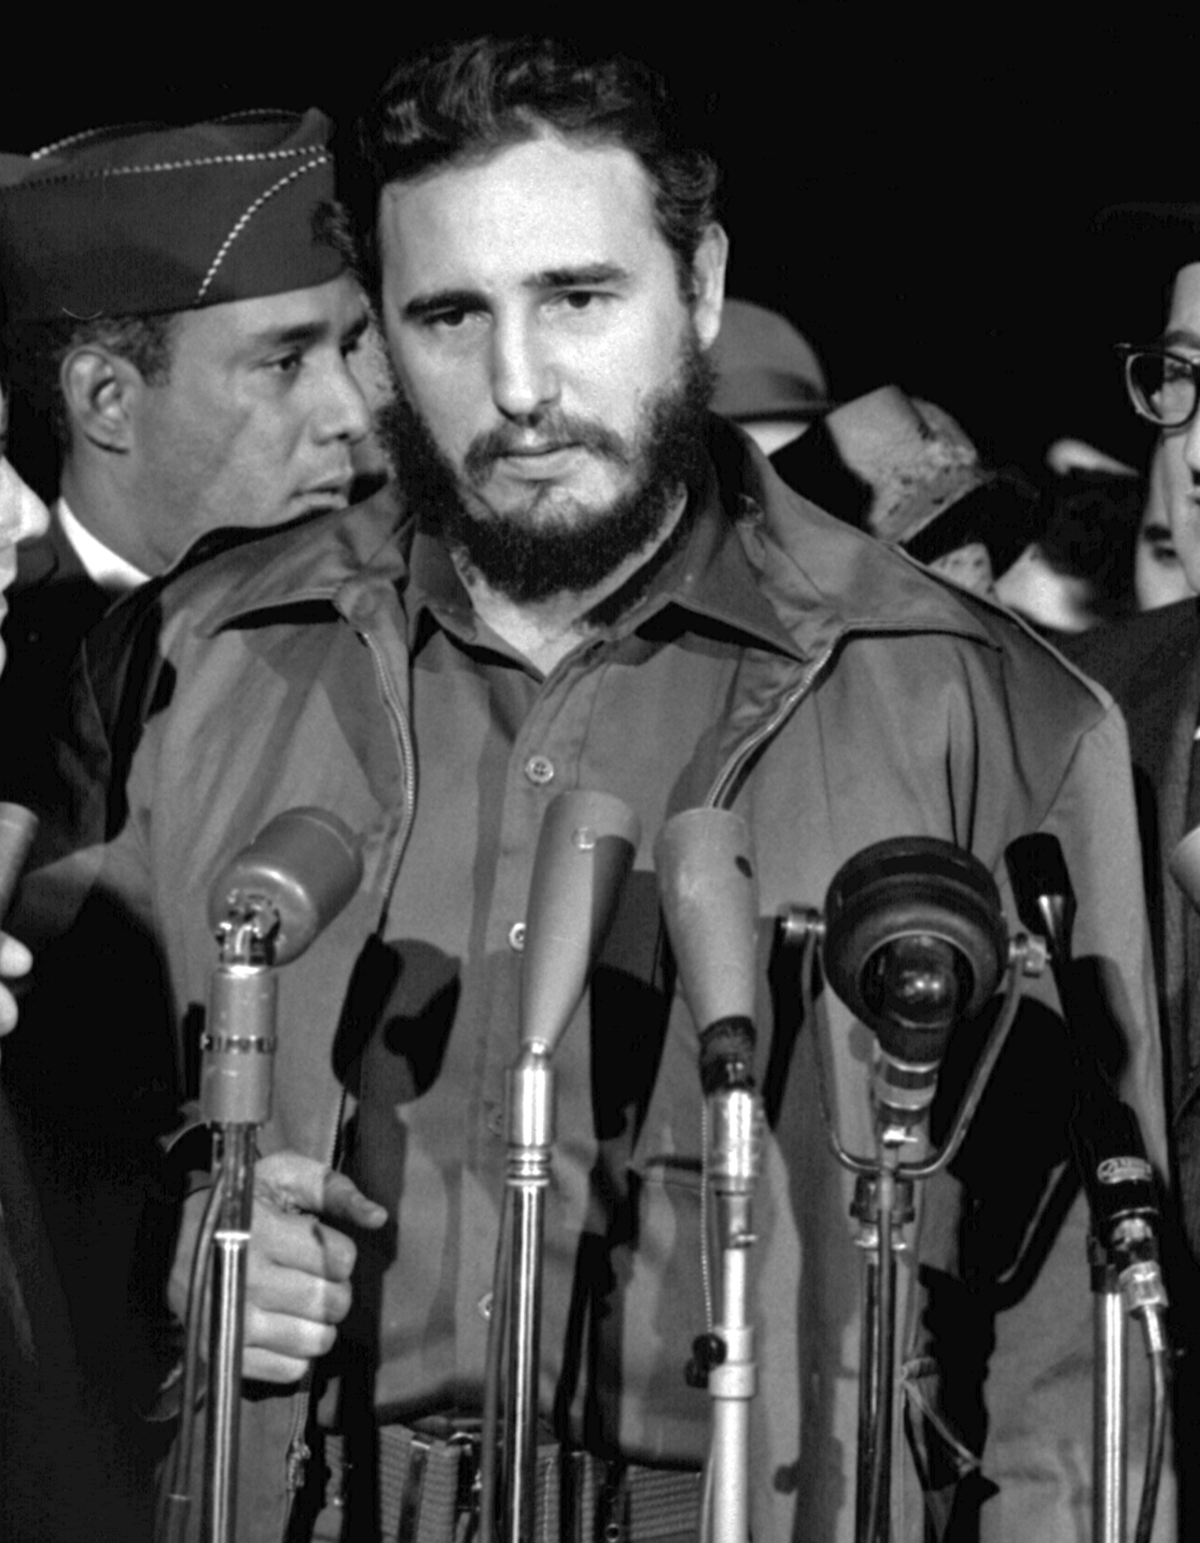 a biography of fidel castro the prime minister of cuba from 1959 to 1976 Fidel alejandro castro ruz was a revolutionary & politician who was prime minister of cuba (1959-76) & president (1976-2008) he also served as the commander in chief of the cuban.